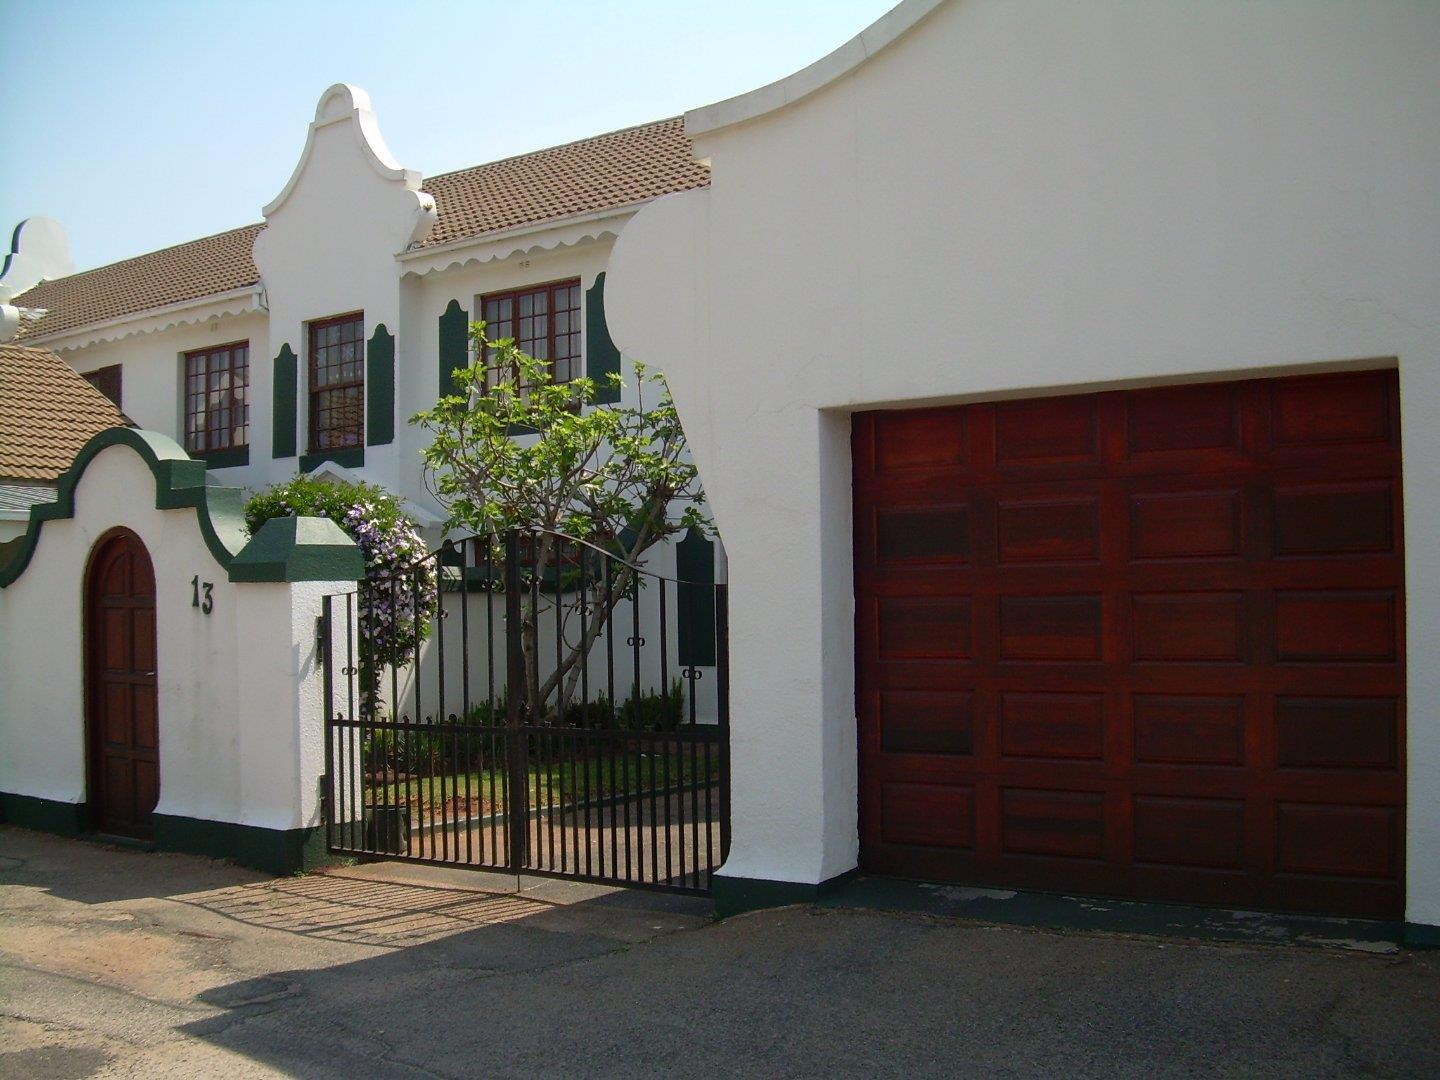 3 Bedroom  Apartment for Sale in Roodepoort - Gauteng